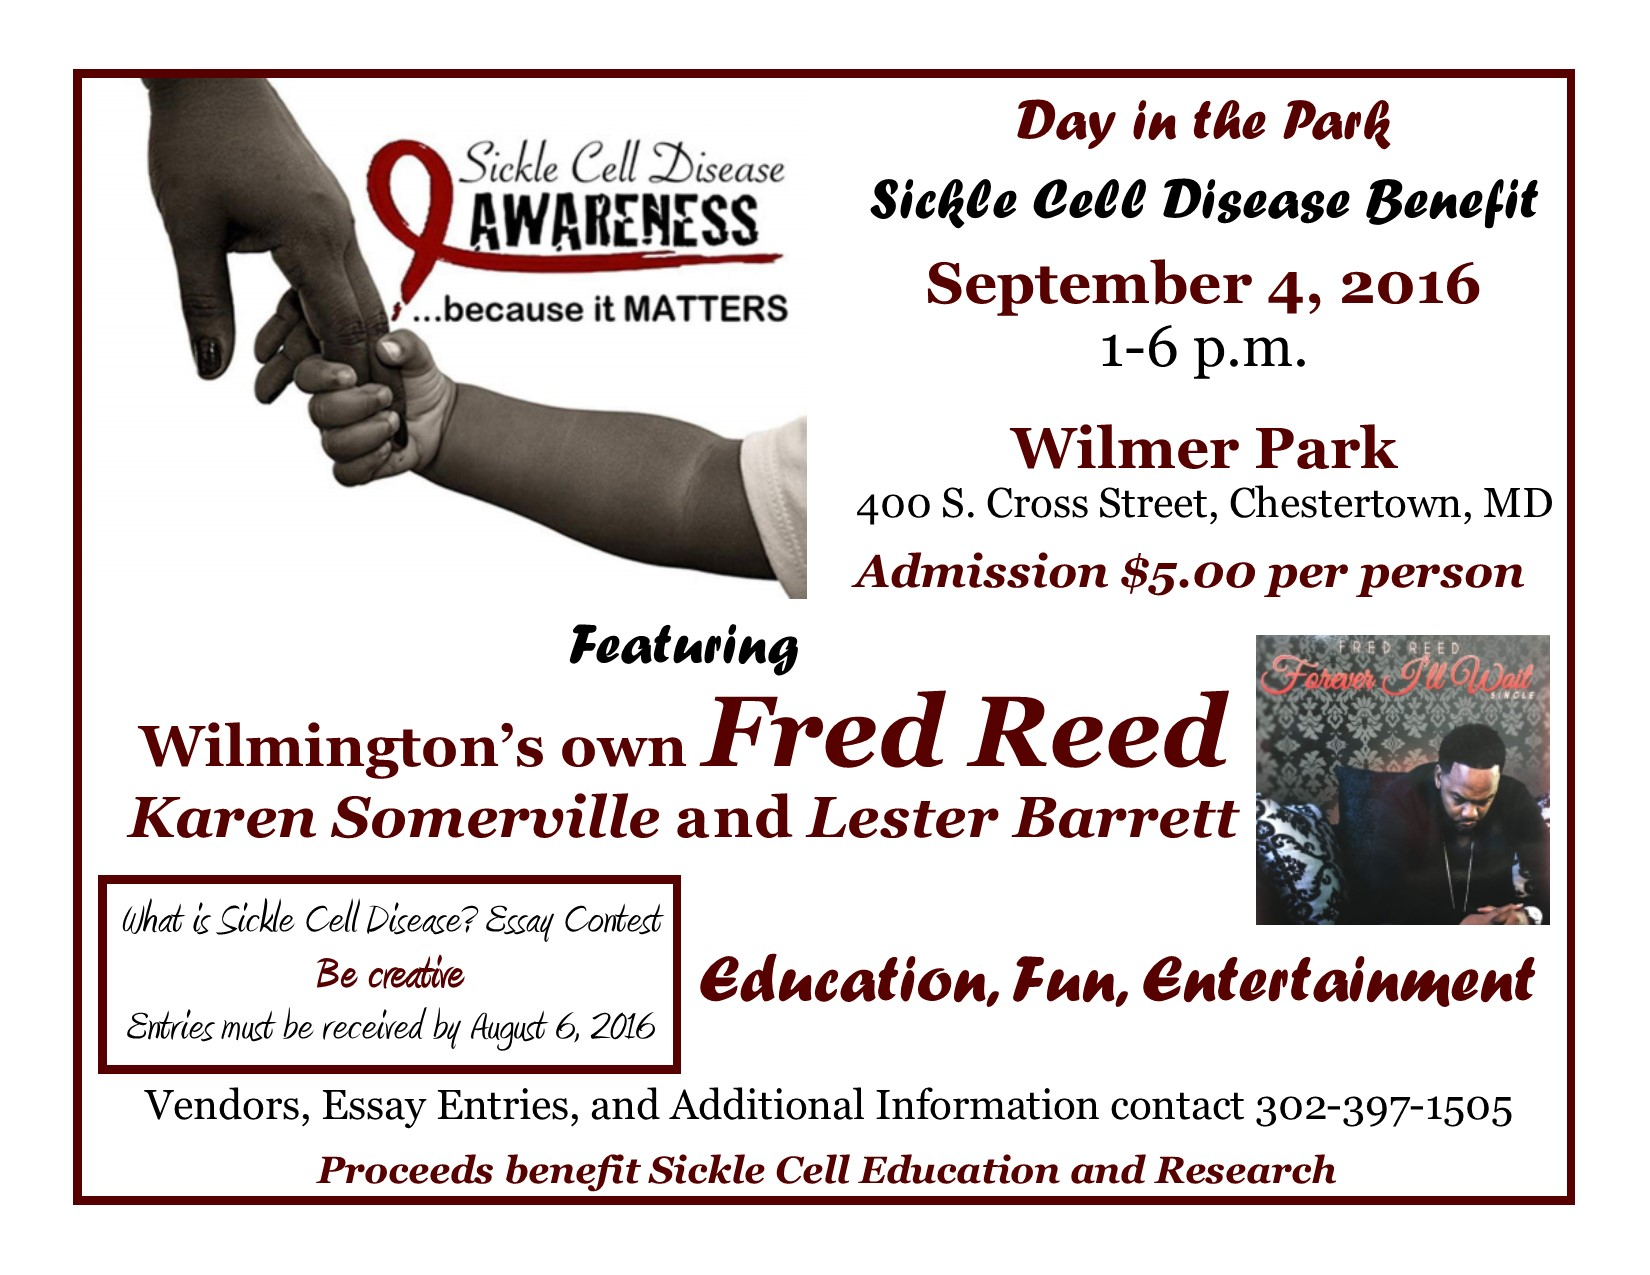 DAY IN THE PARK FOR SICKLE CELL DISEASE